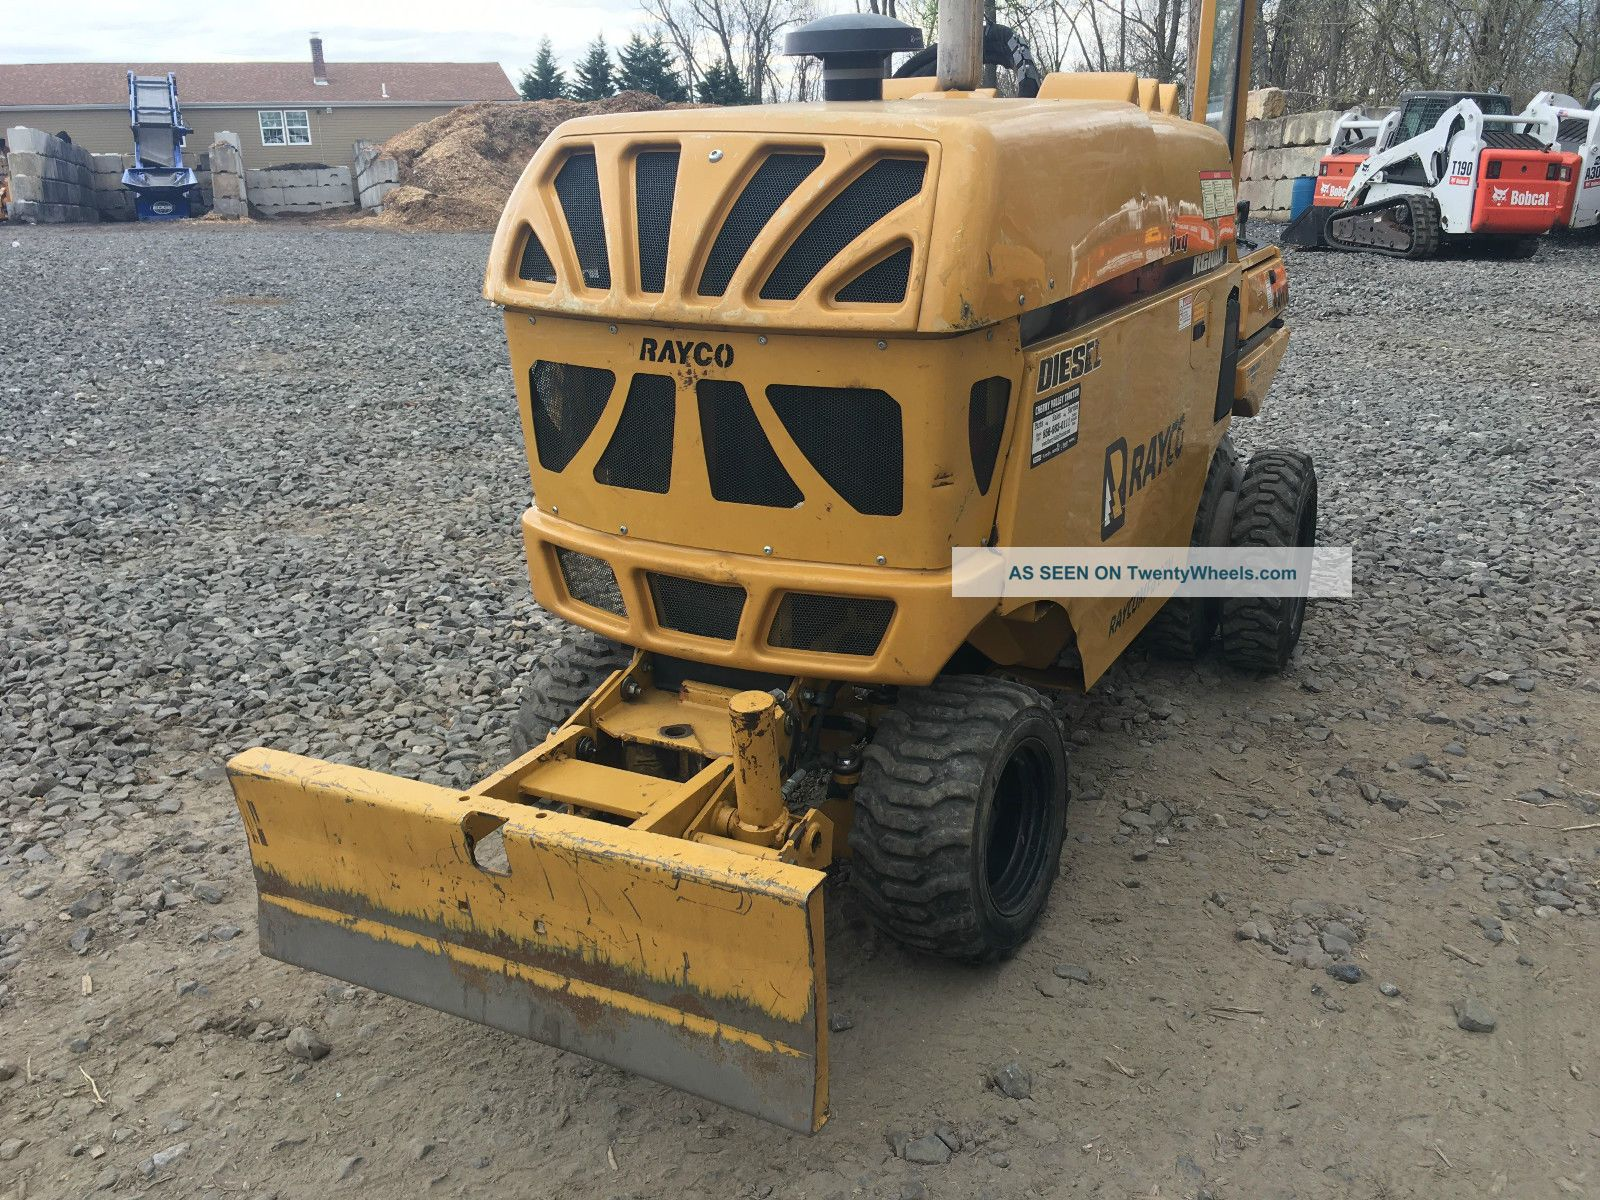 2013 Rayco Rg100x Stump Grinder With Trailer Wood Chippers & Stump Grinders photo